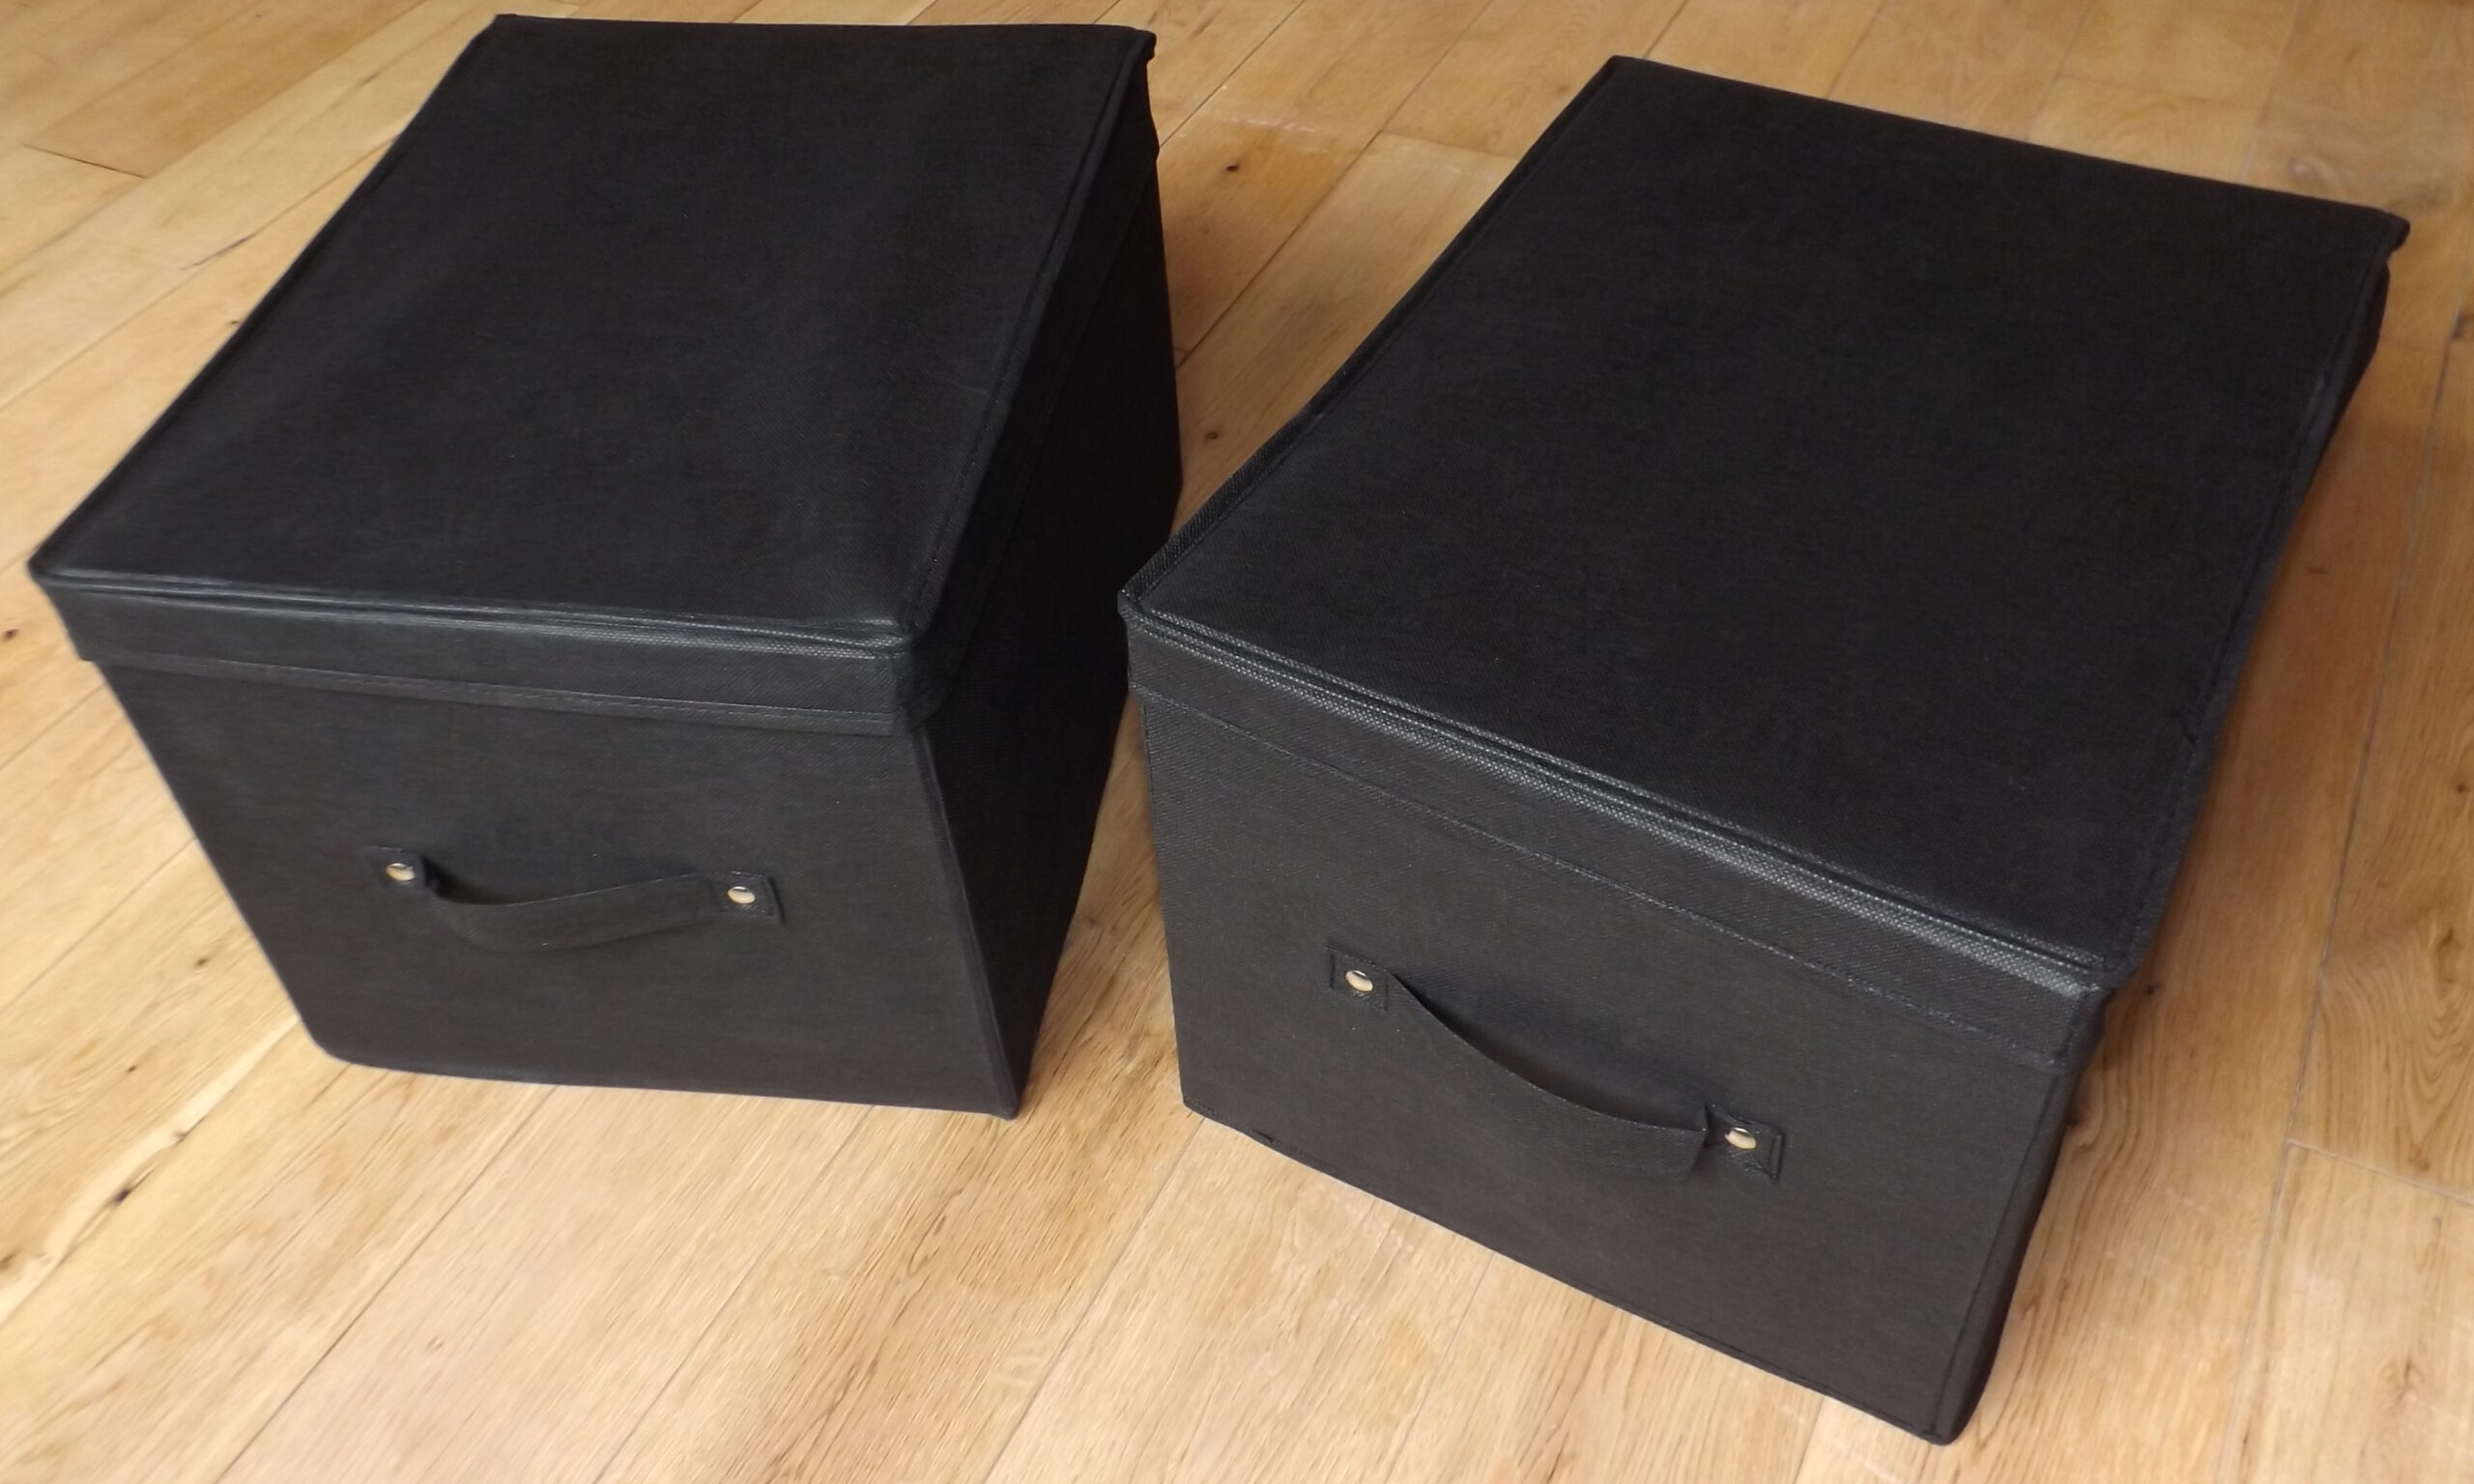 Medium Foldable Storage Boxes, Premium, Pack of 2 - 30 Litre Capacity Per Box, 40x30x25cm, Black